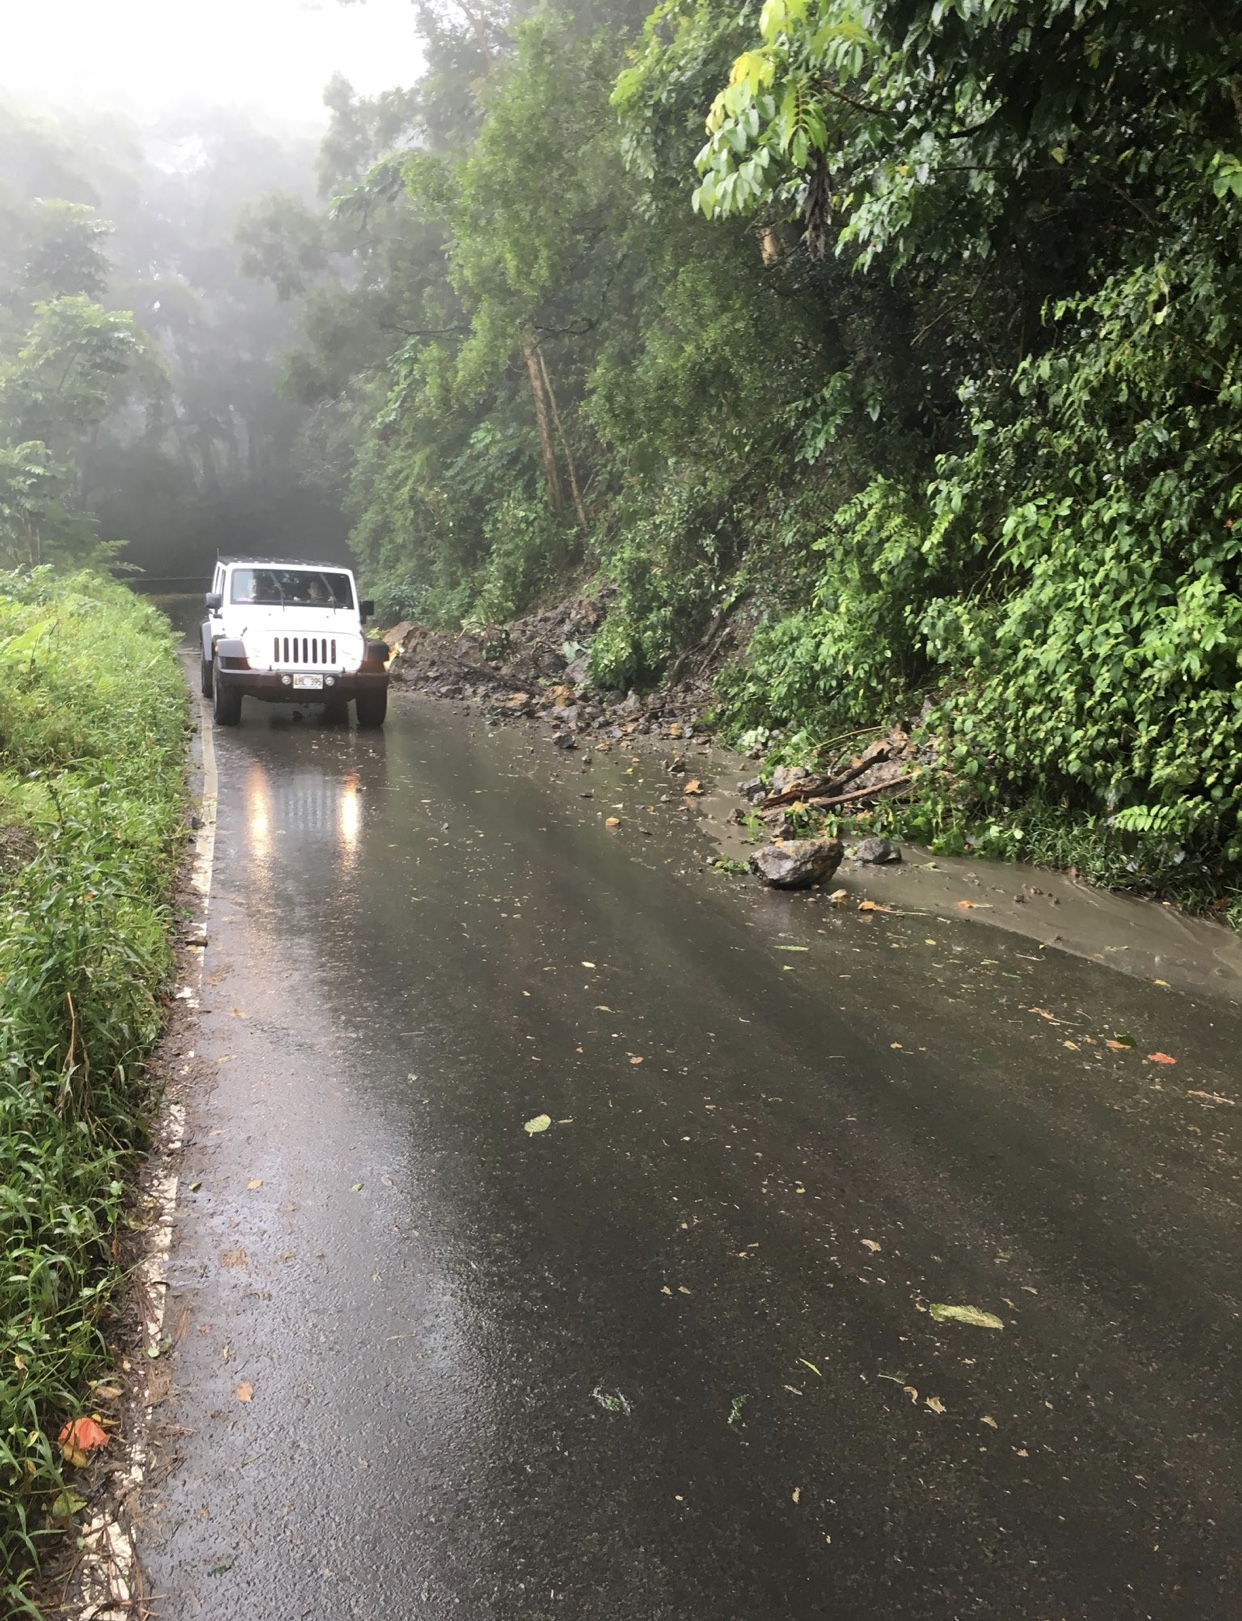 Traffic Advisory: Hana Highway Rockslide